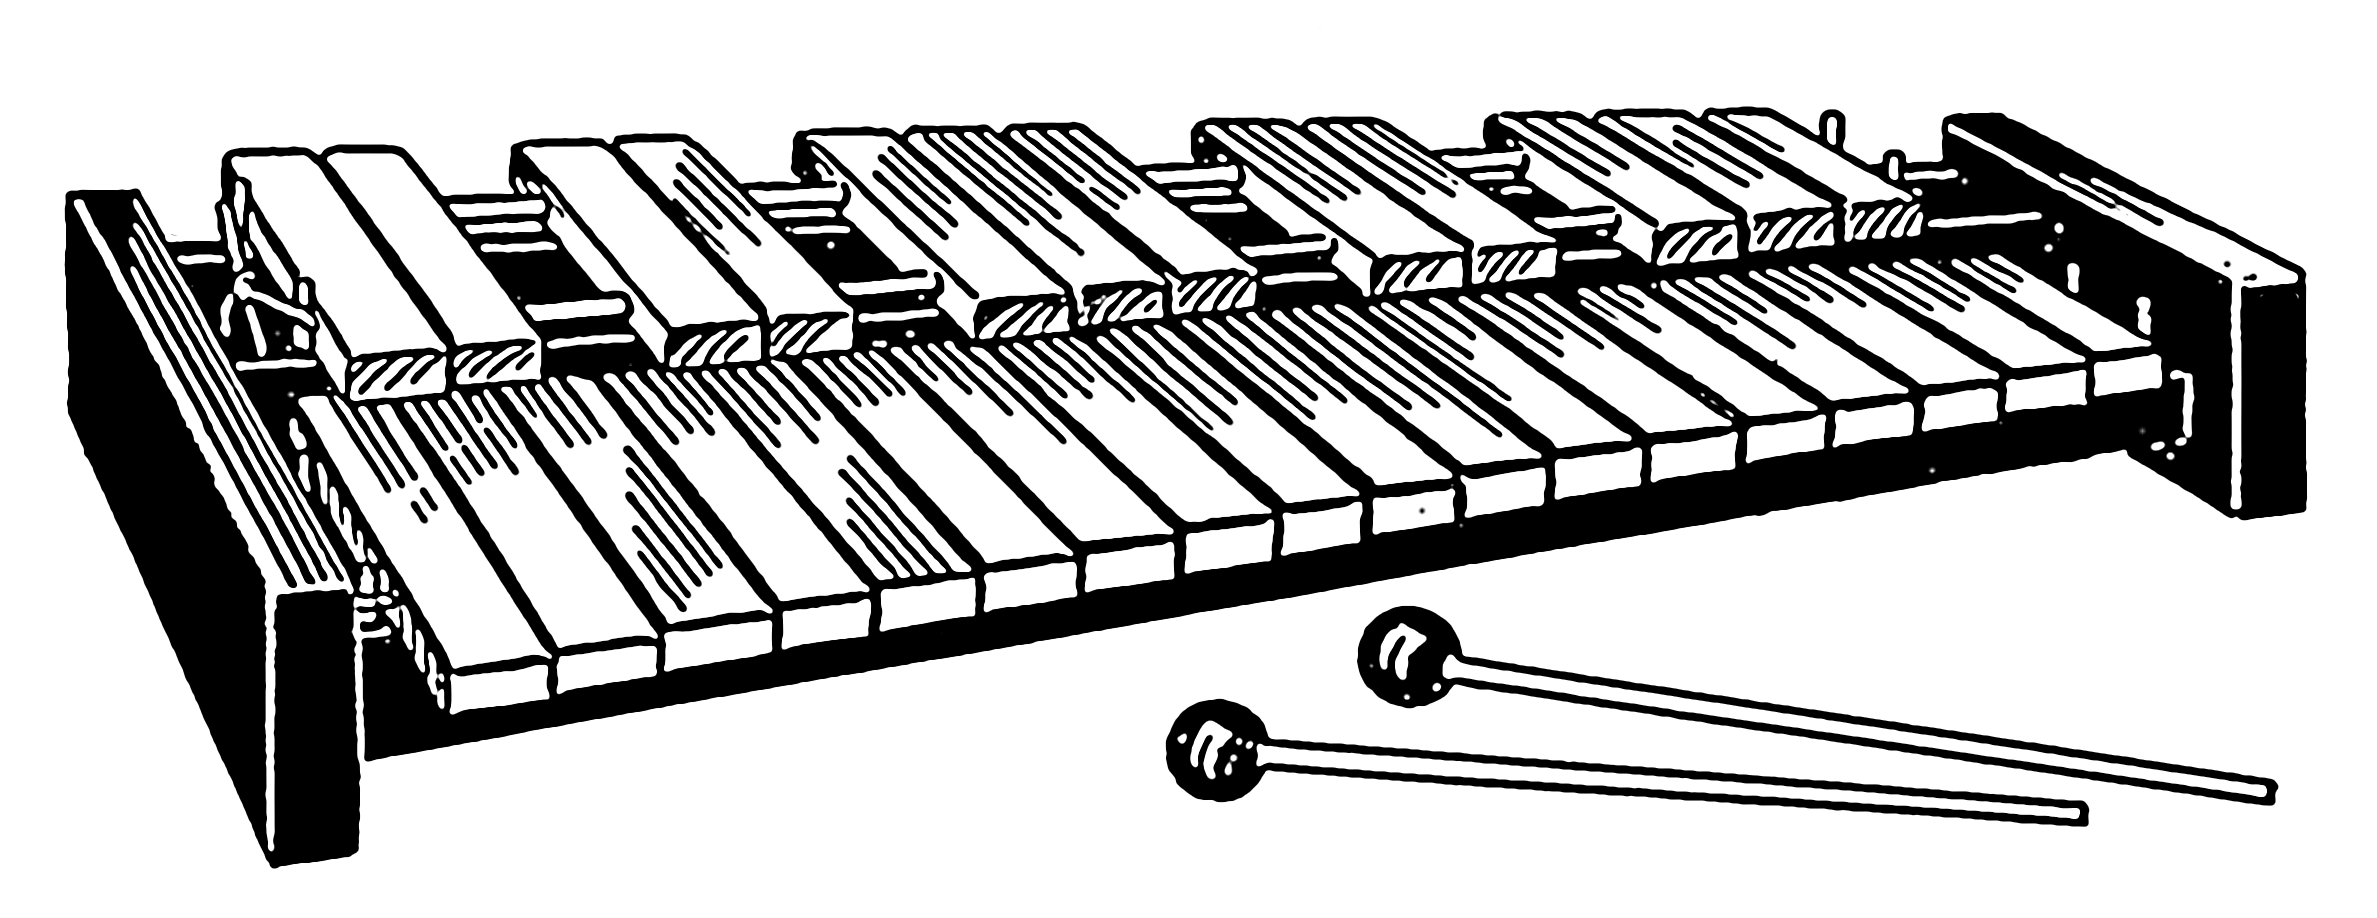 Xylophone_(PSF)[1]